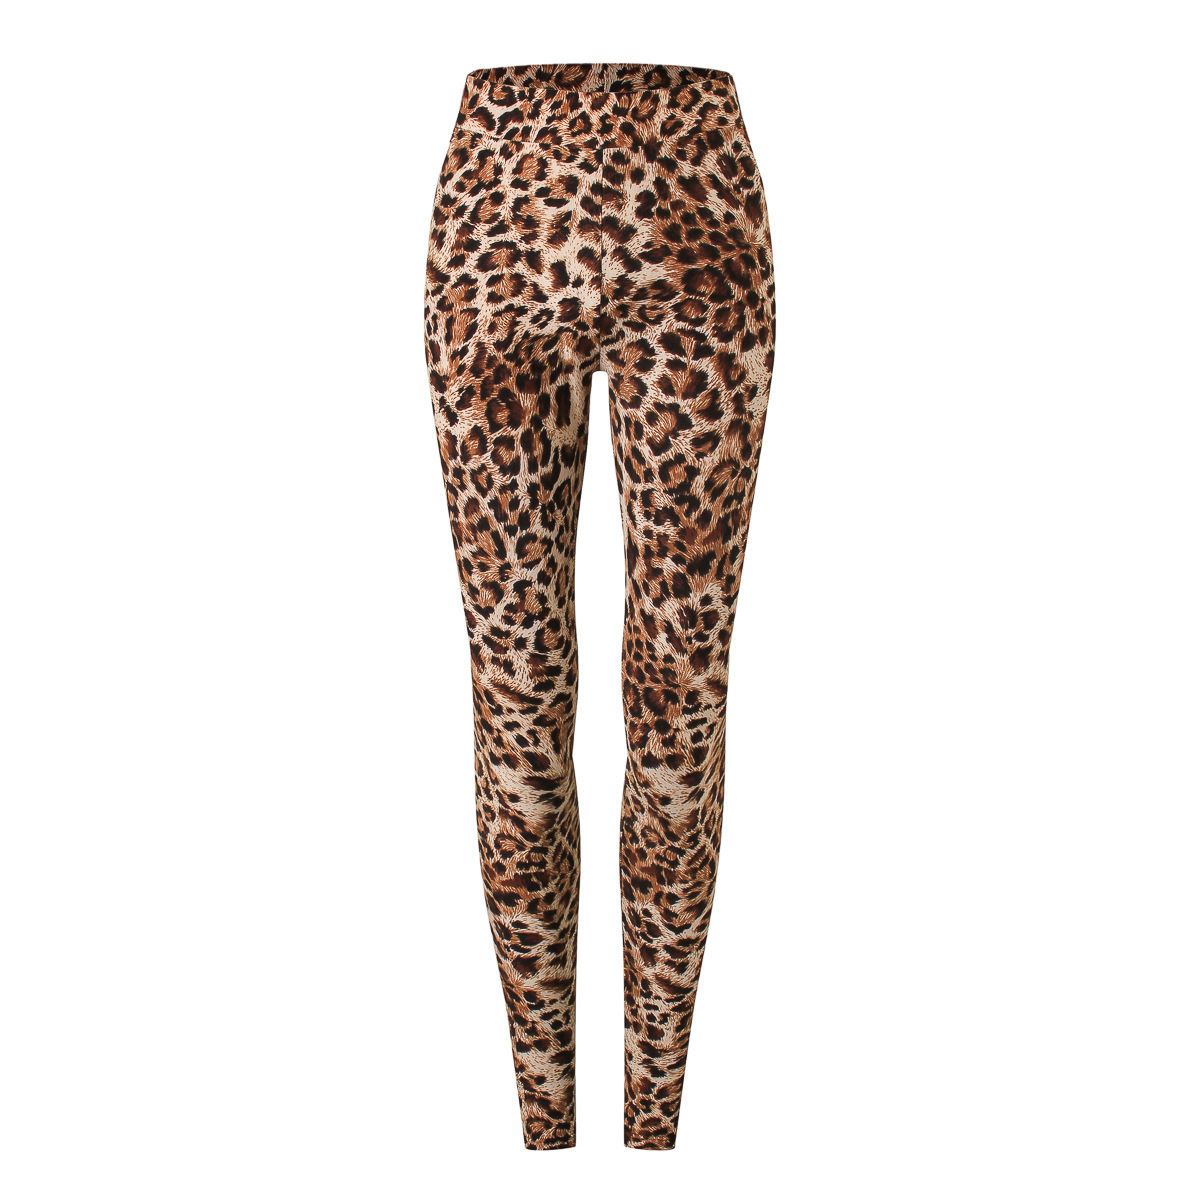 Women Yoga Set Leopard Print Gym Fitness Back Cross Clothes Running Tights Jogging Workout Yoga Leggings Sport Suit Running Wear Y190508